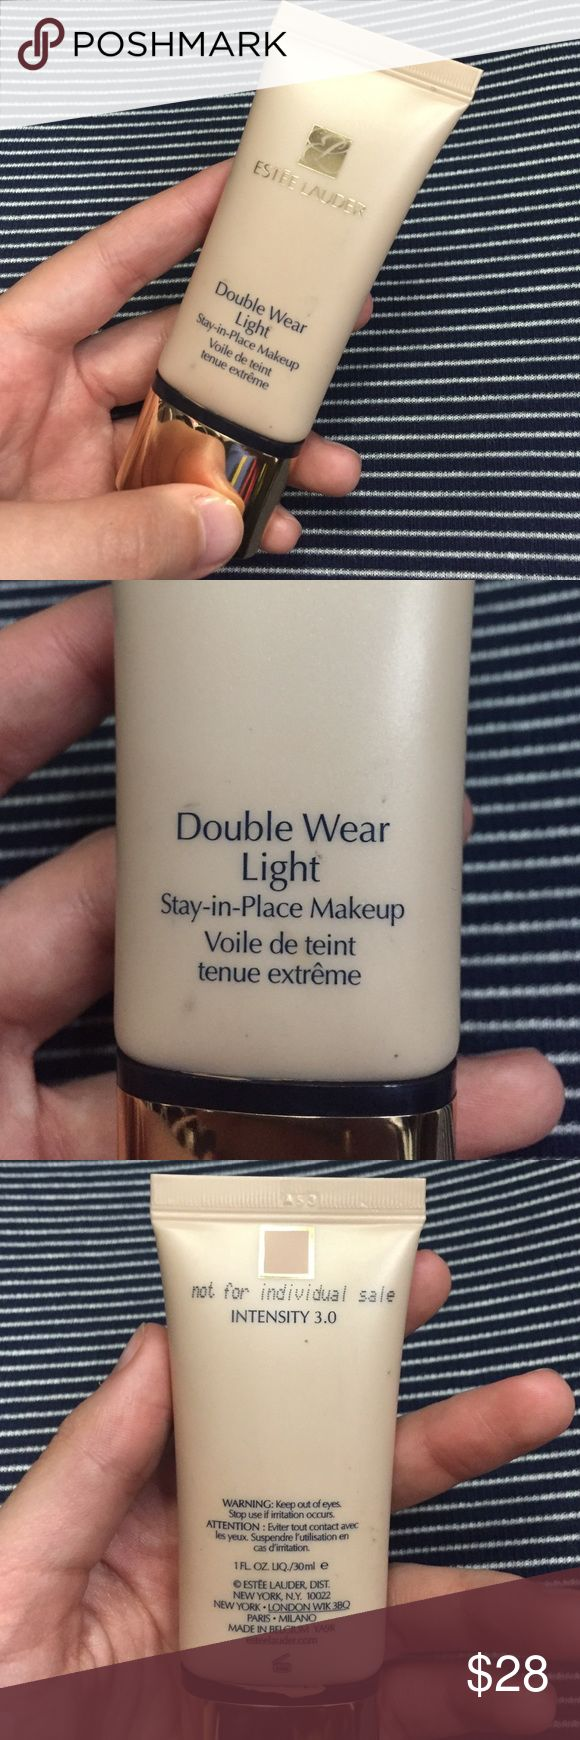 """Estée Lauder Double Wear Light Foundation Shade """"Intensity 3.0"""". No longer using this foundation so I'm selling it. Only used once or twice. Authentic. NO TRADES OR LOWBALLING Makeup Foundation"""